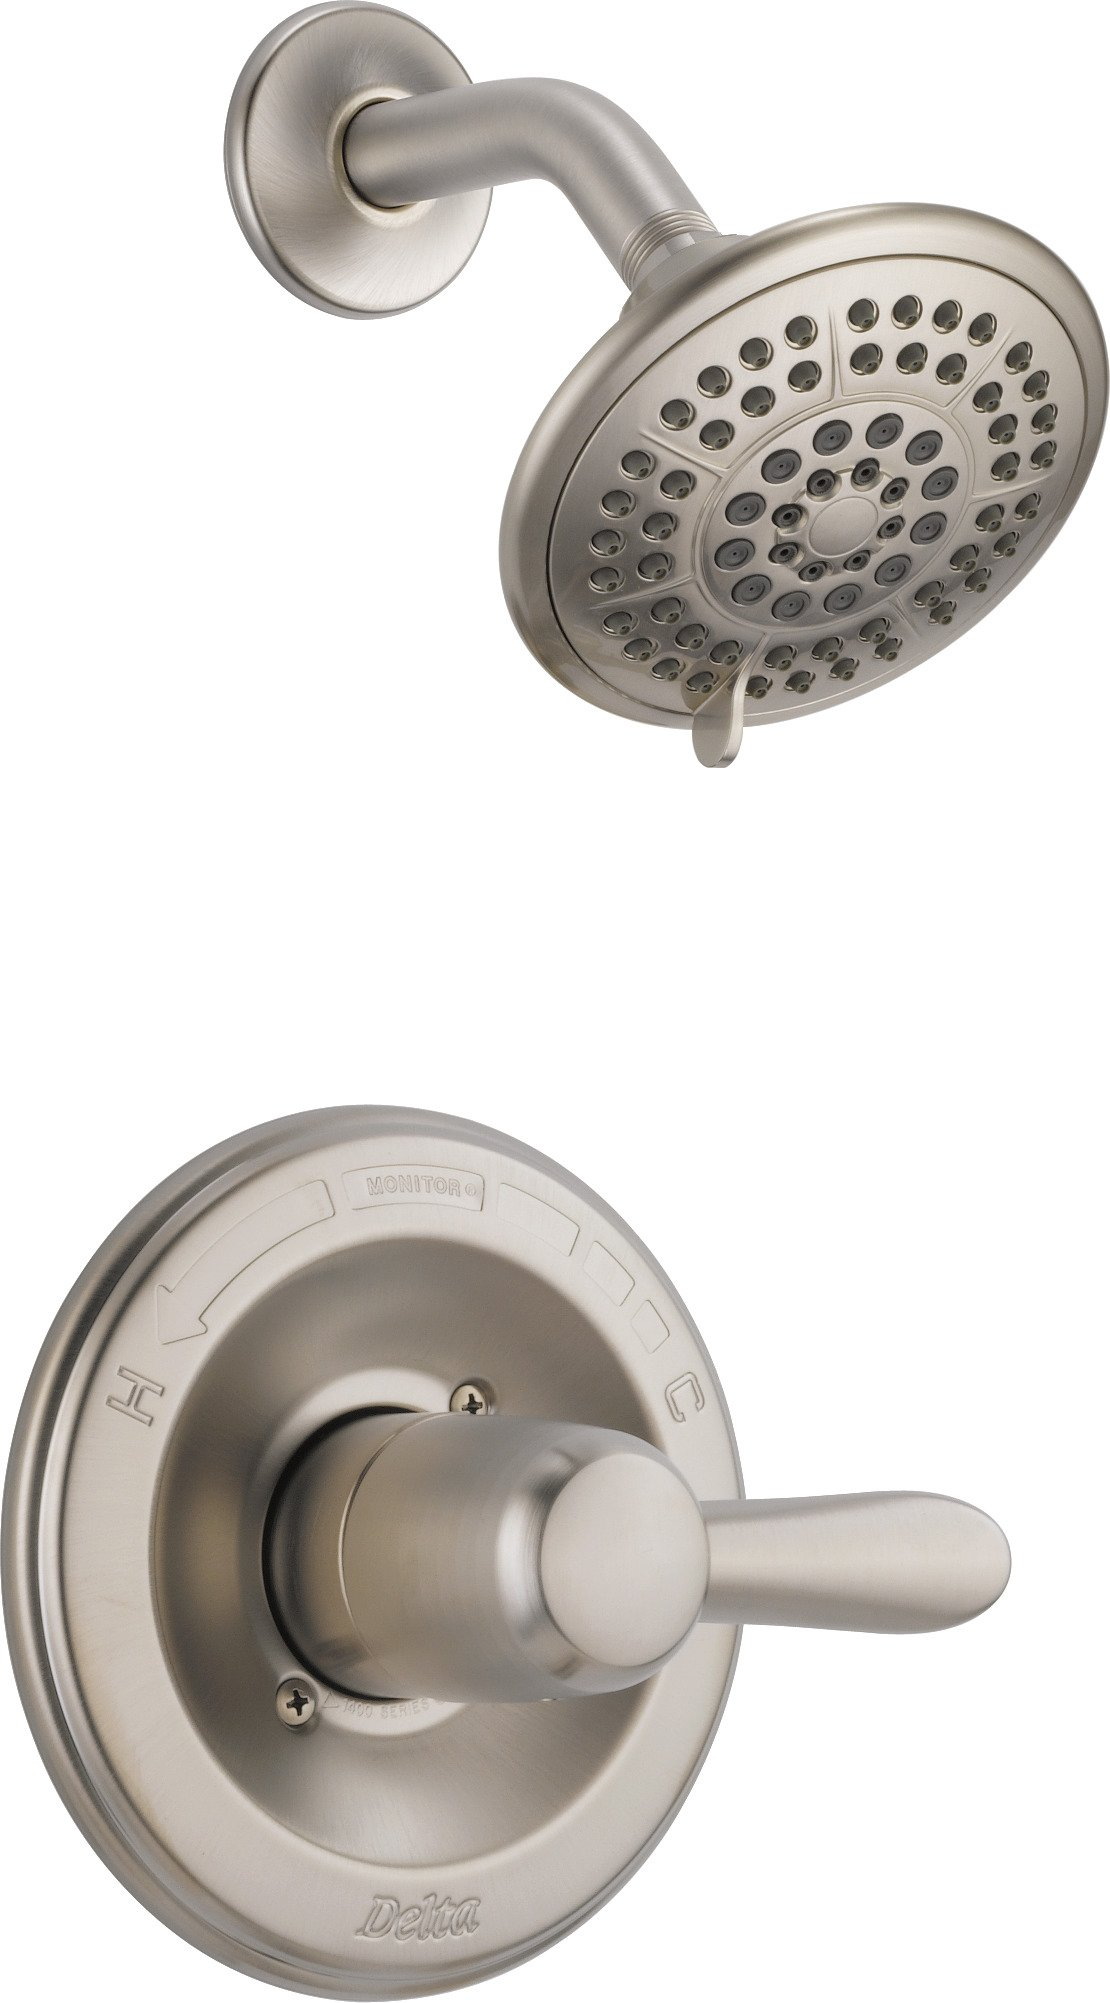 Delta Lahara 14 Series Single-Function Shower Trim Kit with 5-Spray Touch Clean Shower Head, Stainless T14238-SS (Valve Not Included)